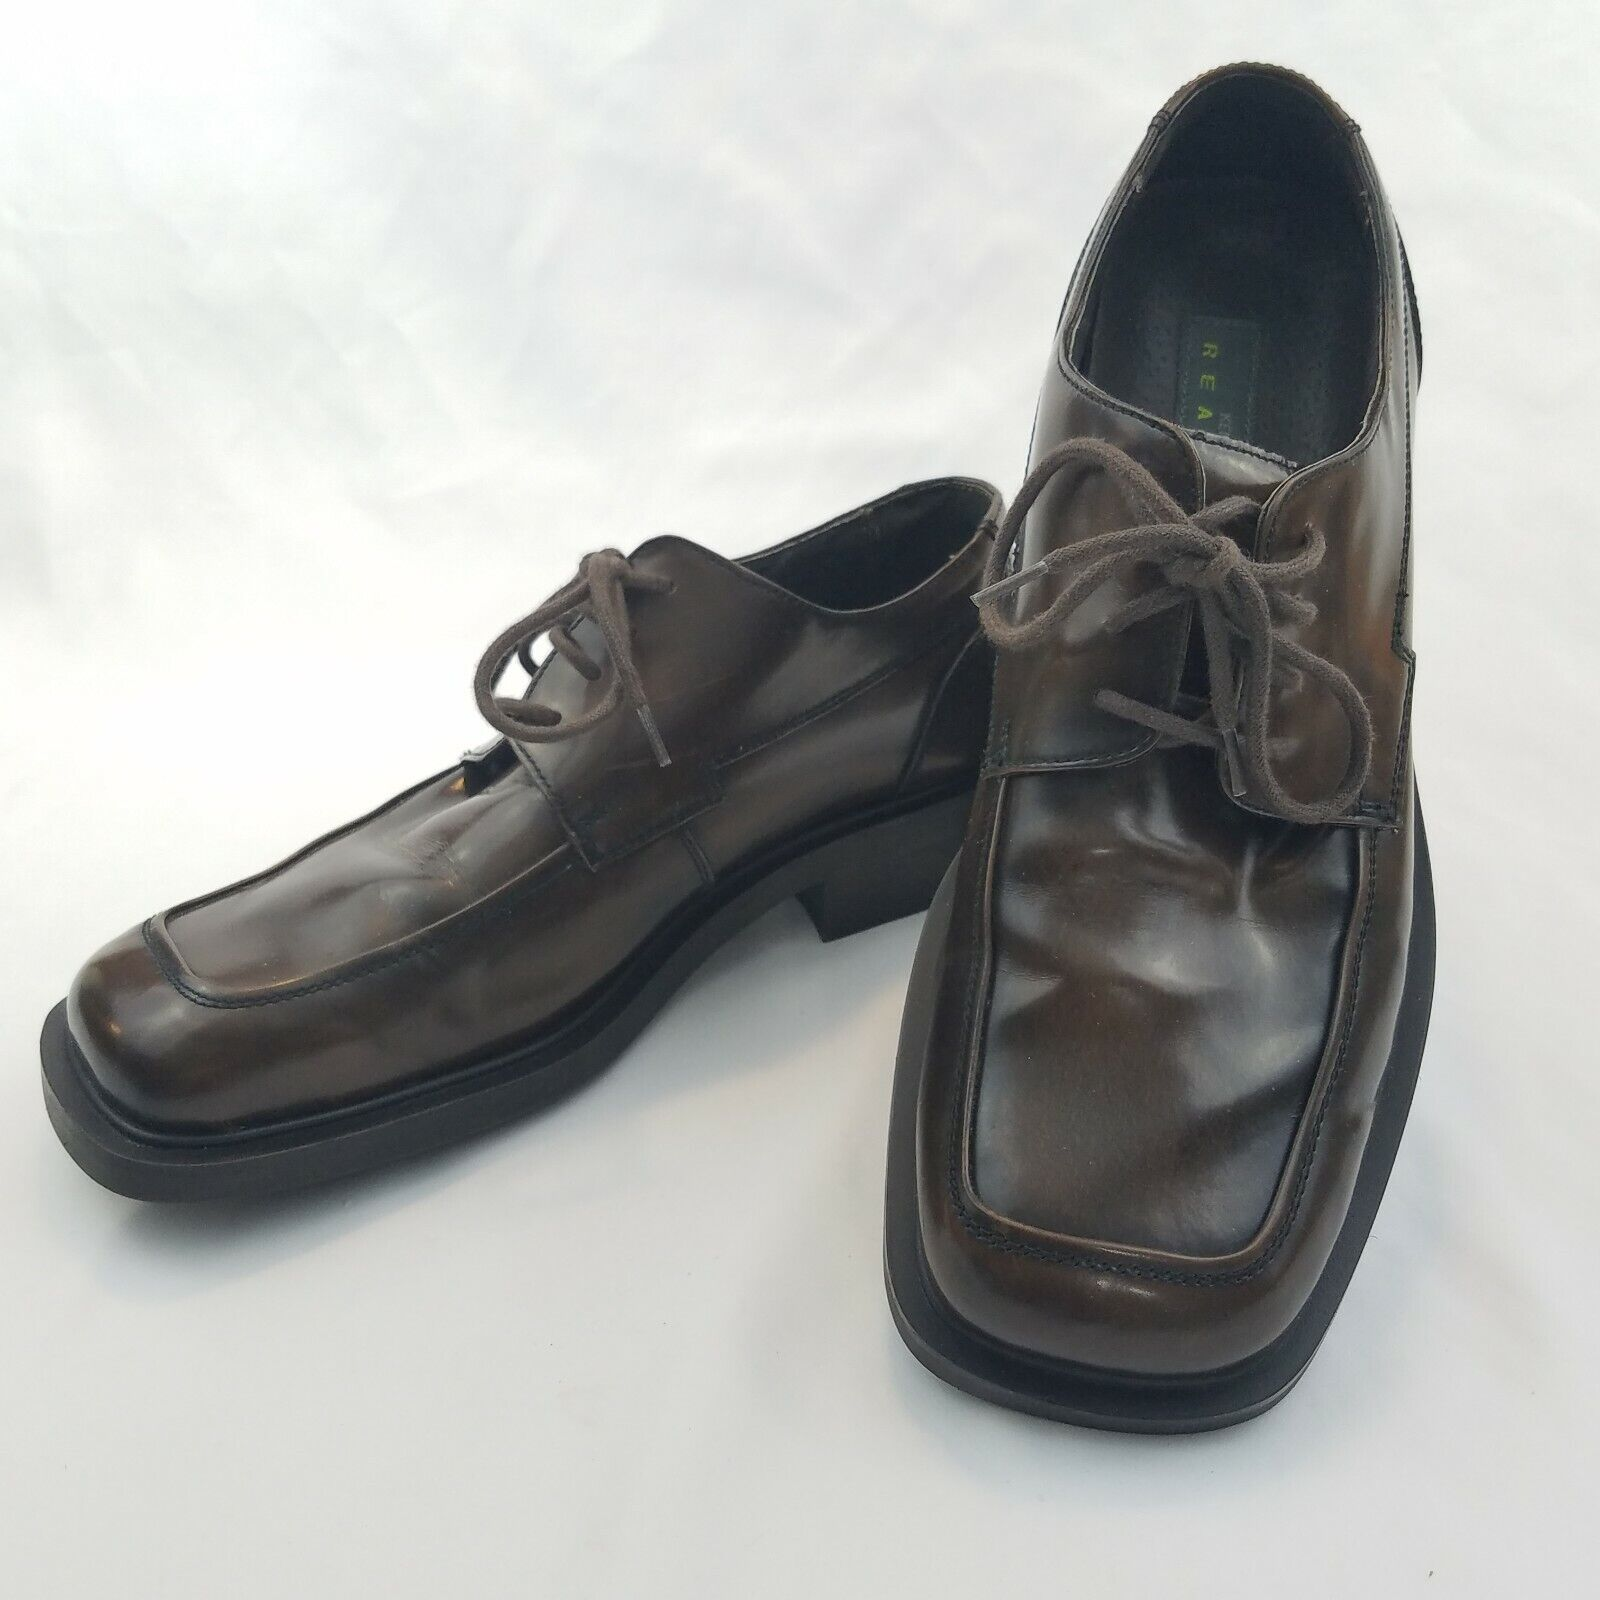 NEW Kenneth Cole Reaction Mens Brown Leather Square Toe Oxford Dress Shoes US 11